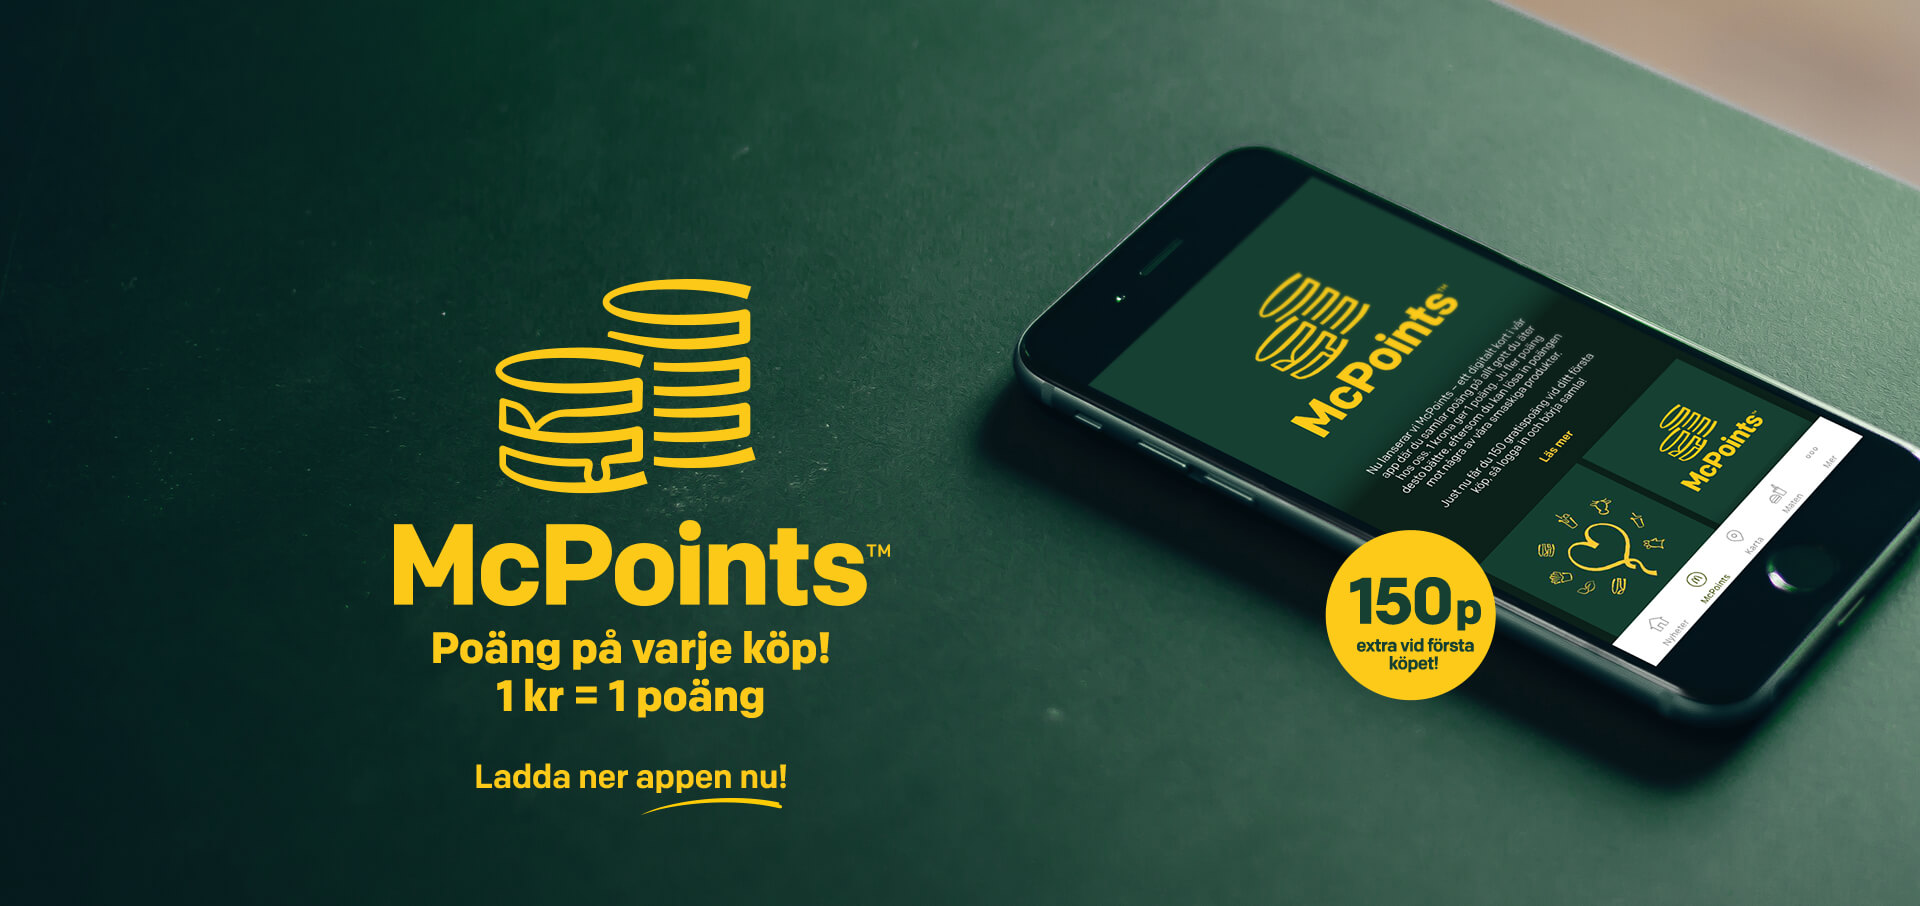 McPoints